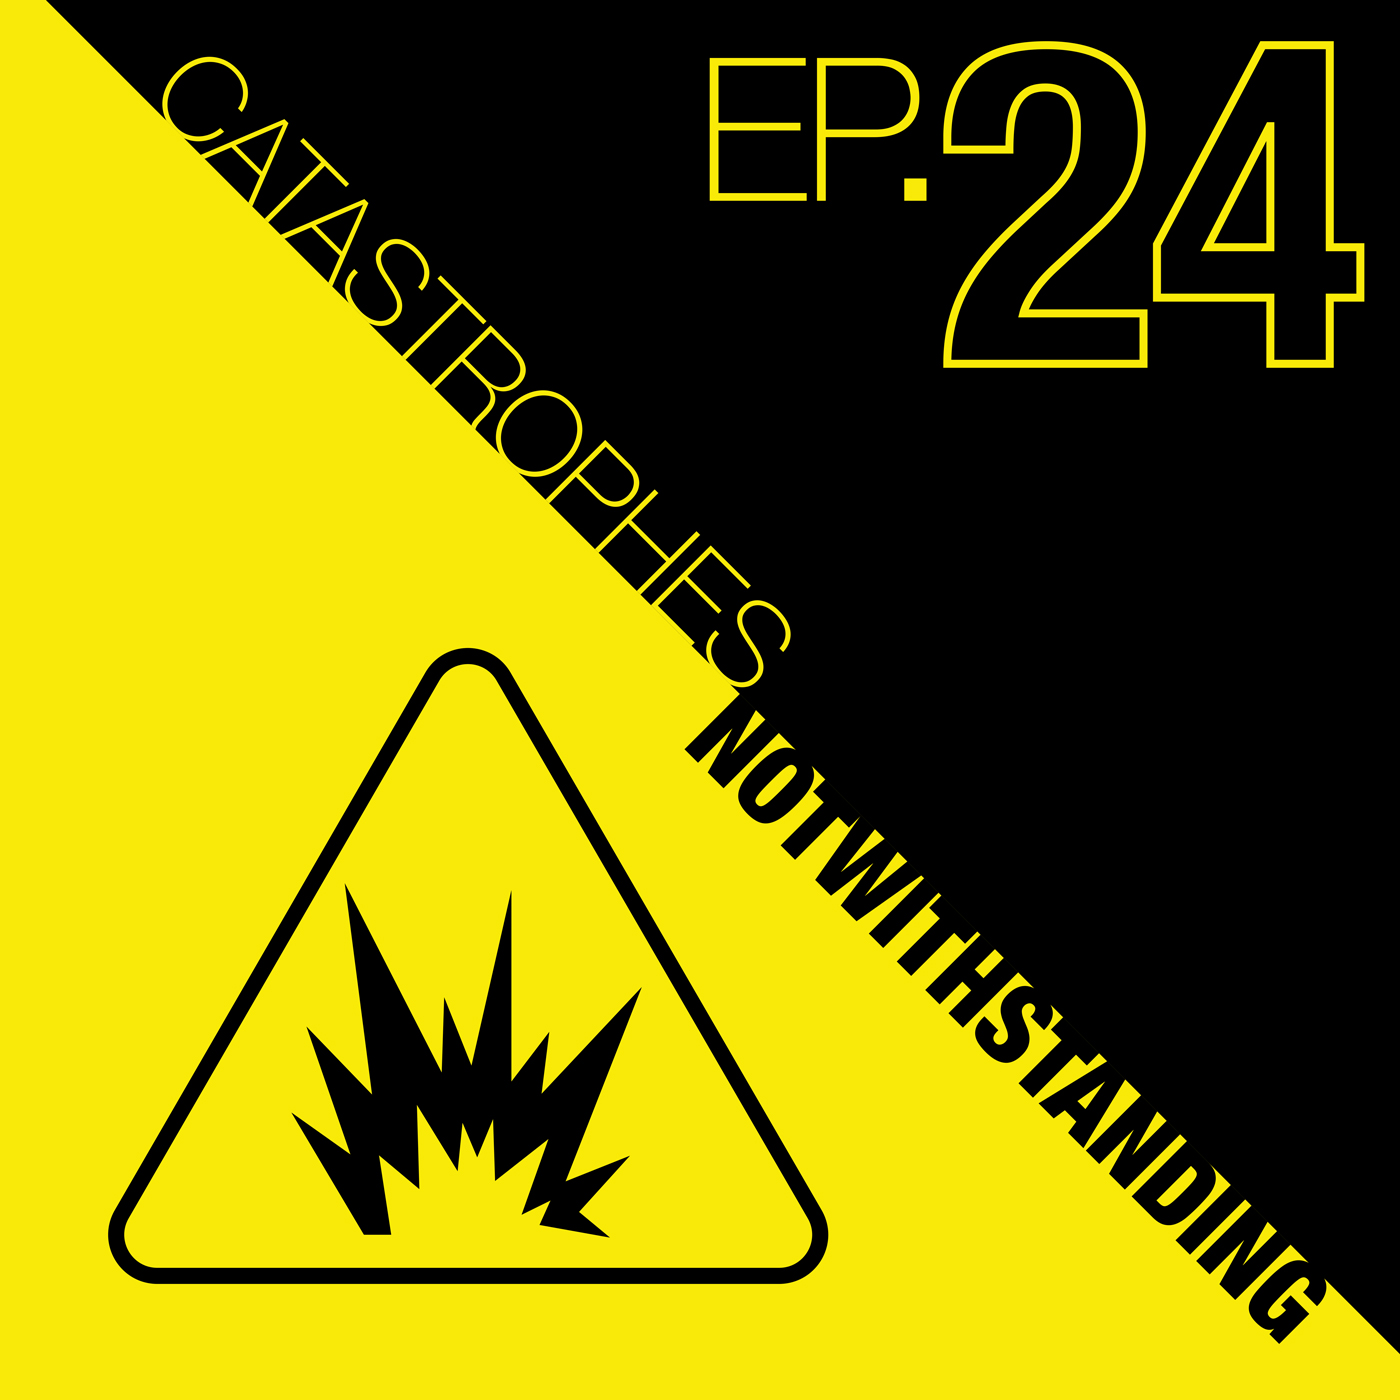 Cover Image of Catastrophes Notwithstanding Episode 24